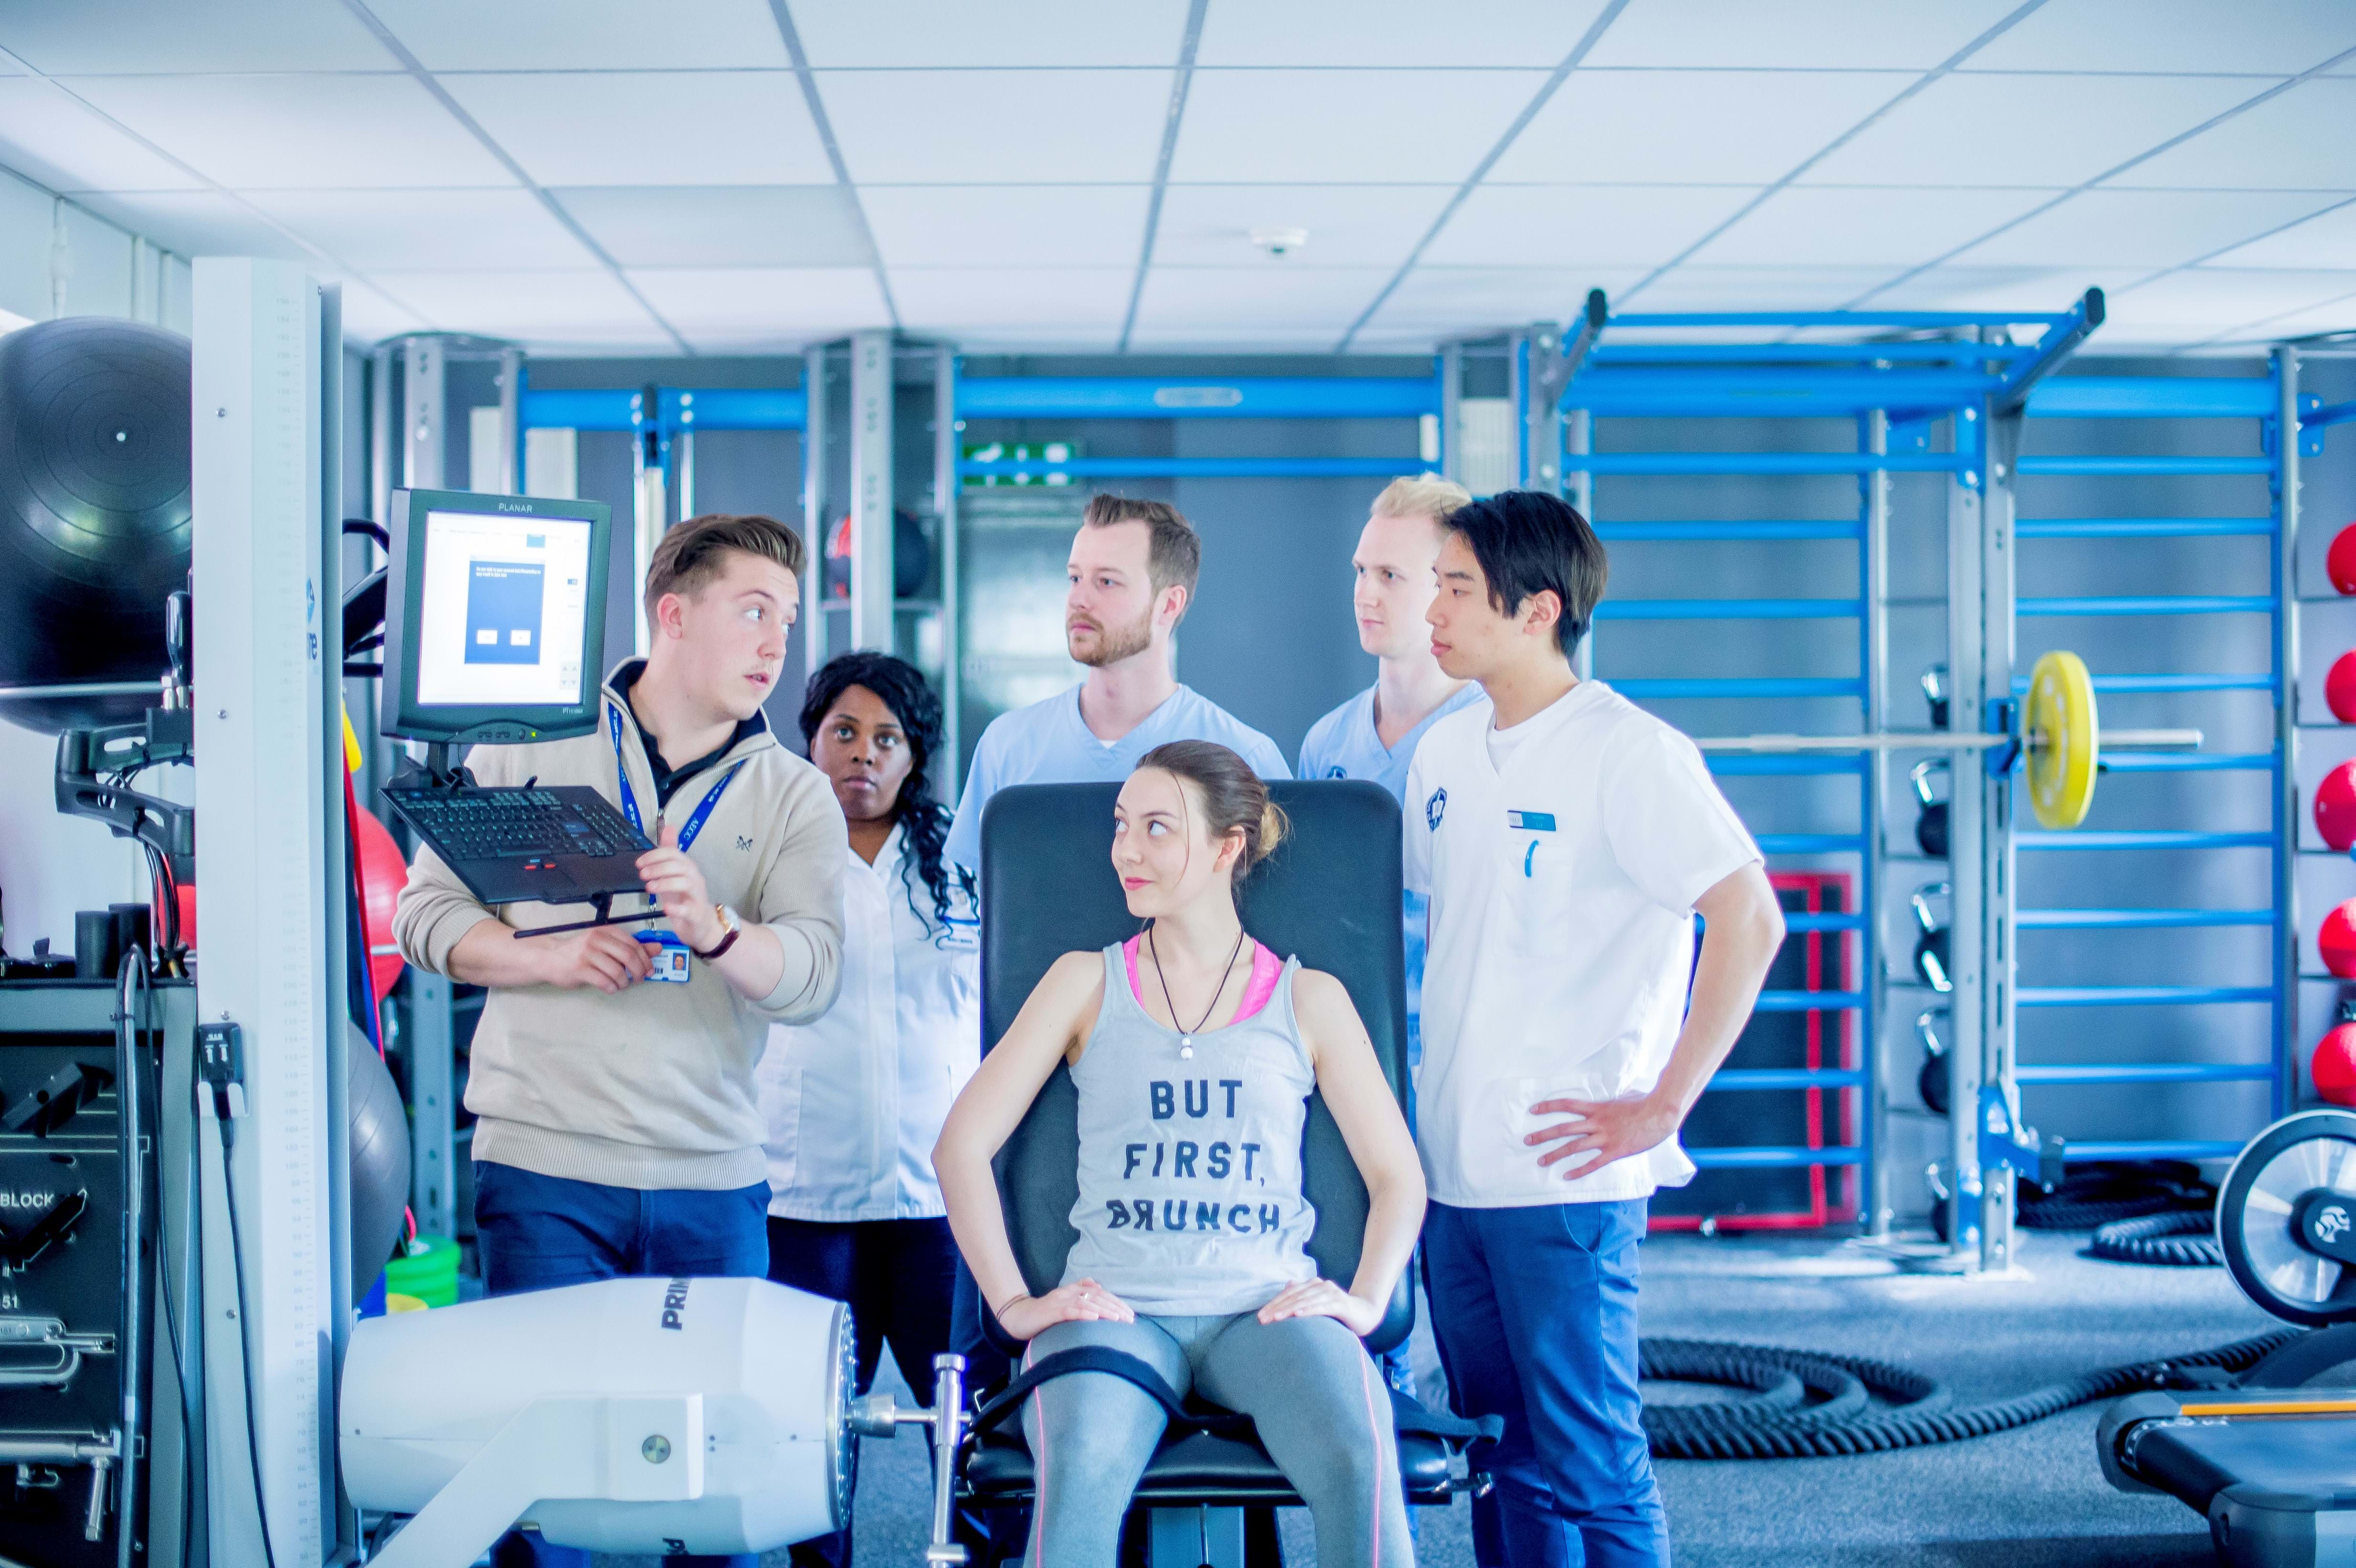 BSc (Hons) Clinical Exercise and Rehabilitation Science